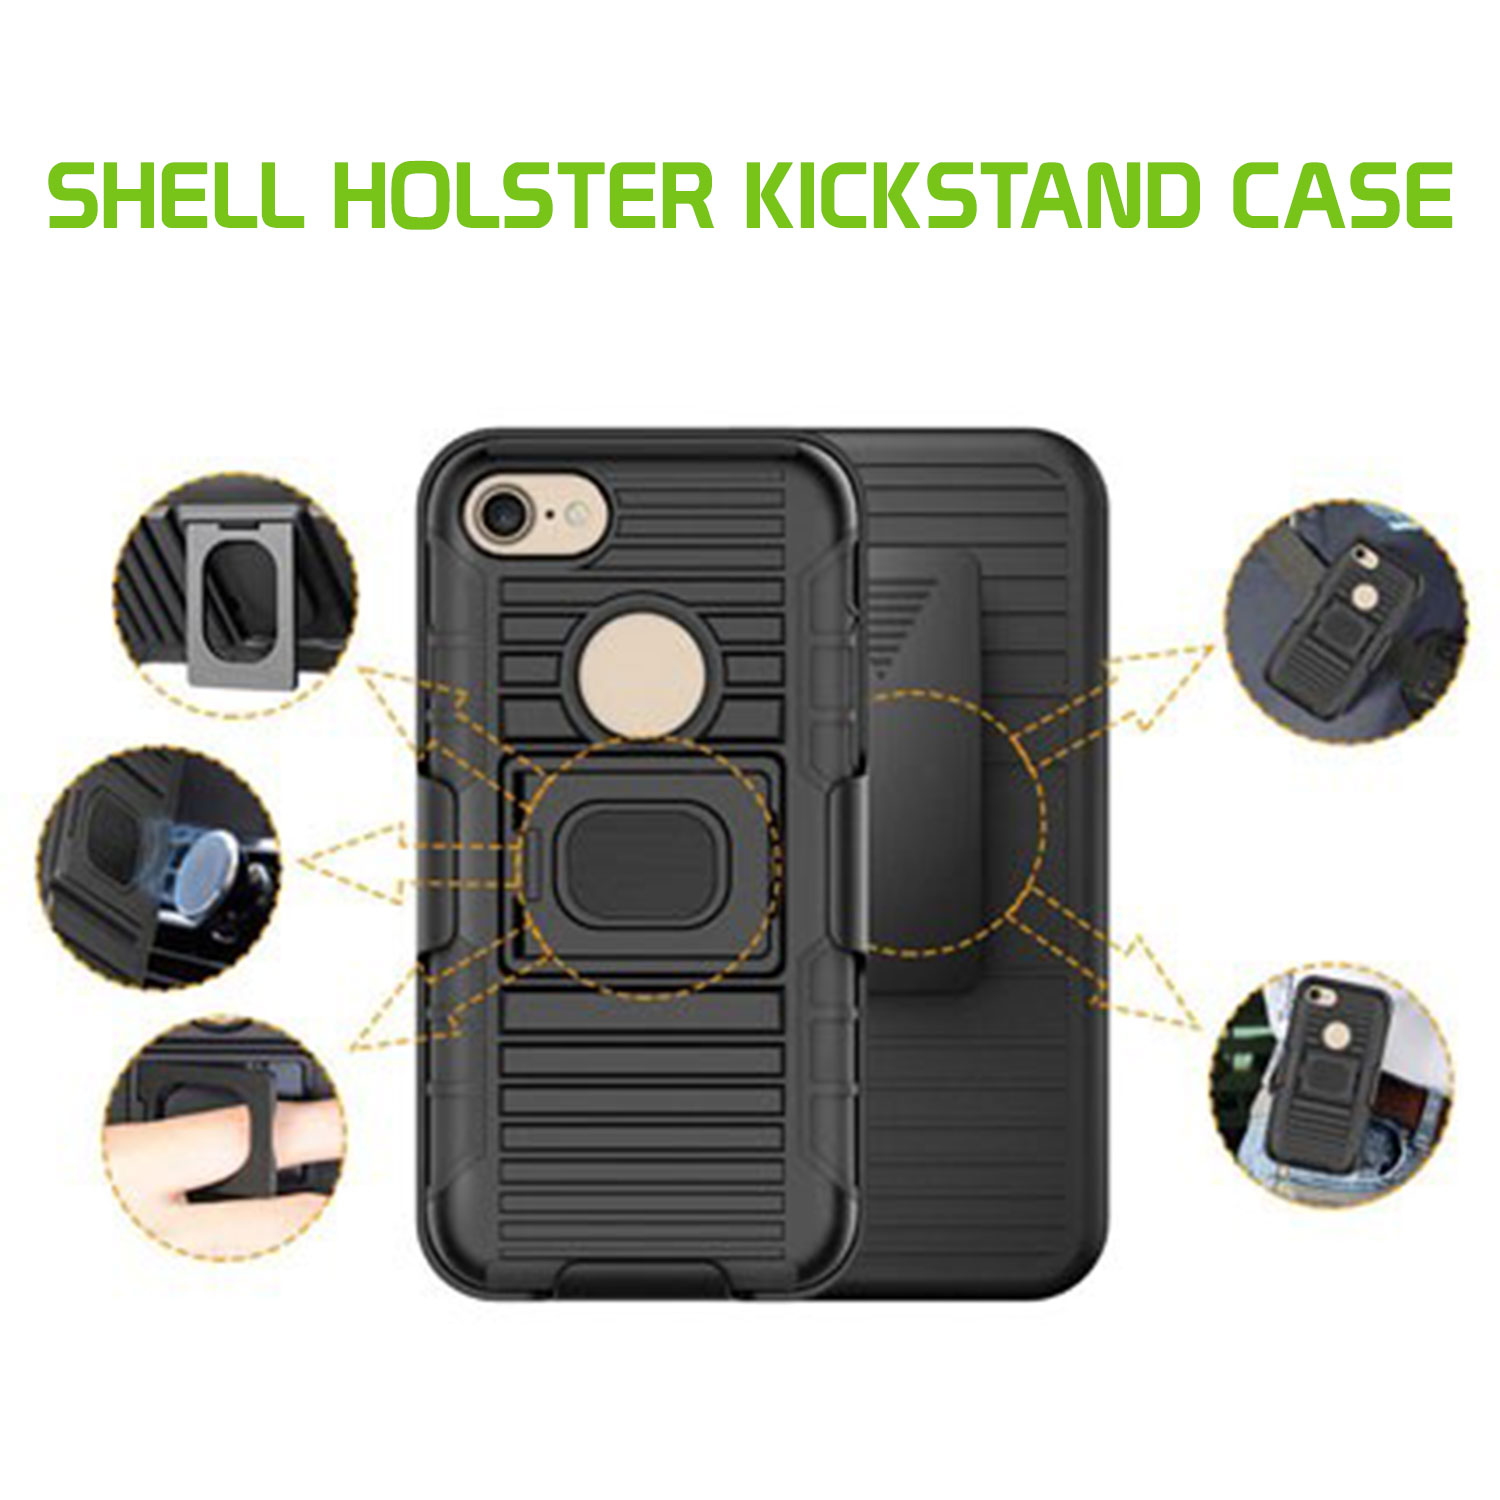 IPhone Xr Case Shell Holster Kickstand Skin Cover Clip Black